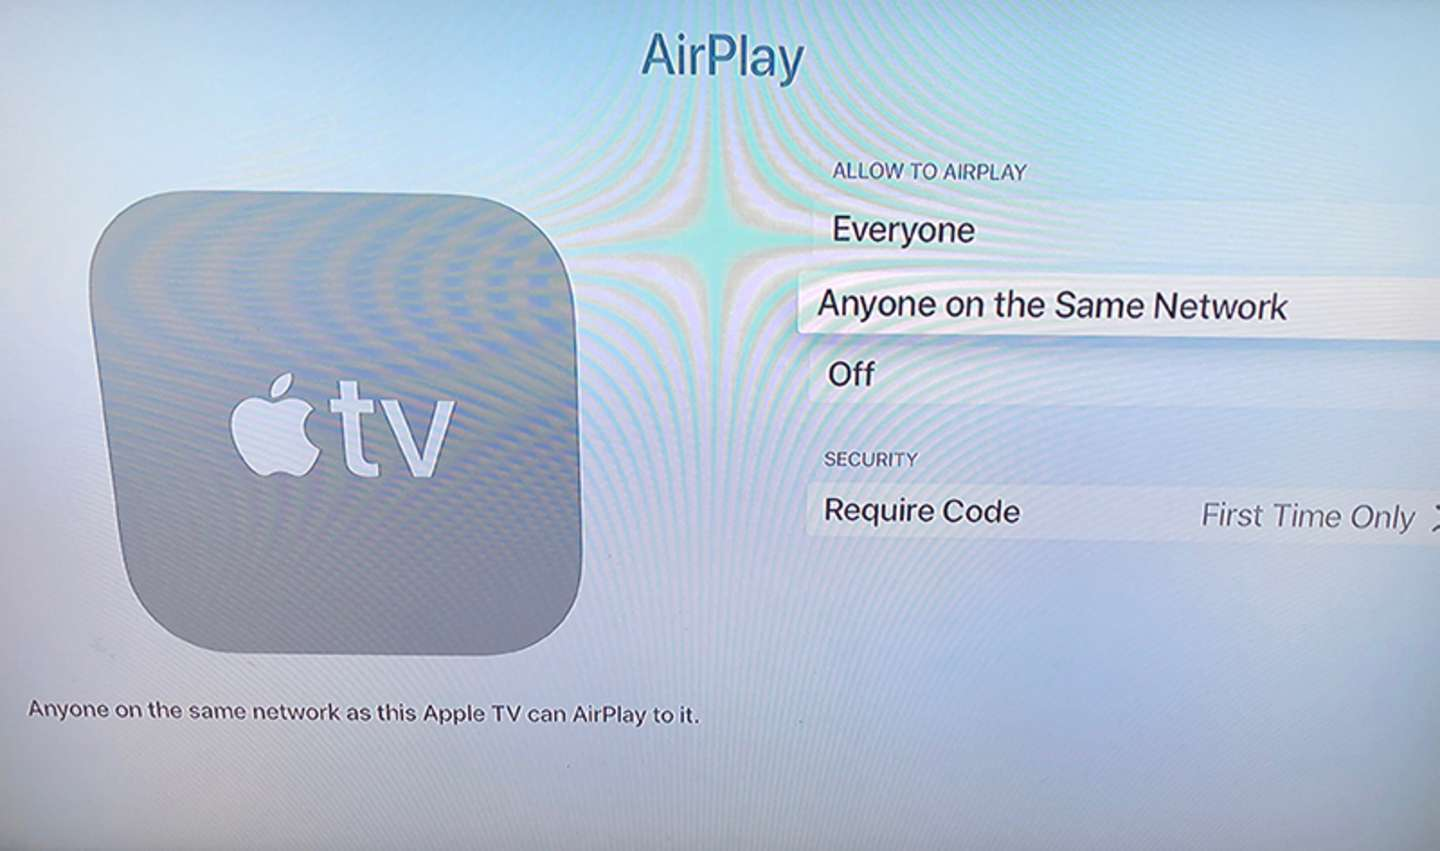 Determine which option to use for Airplay usage